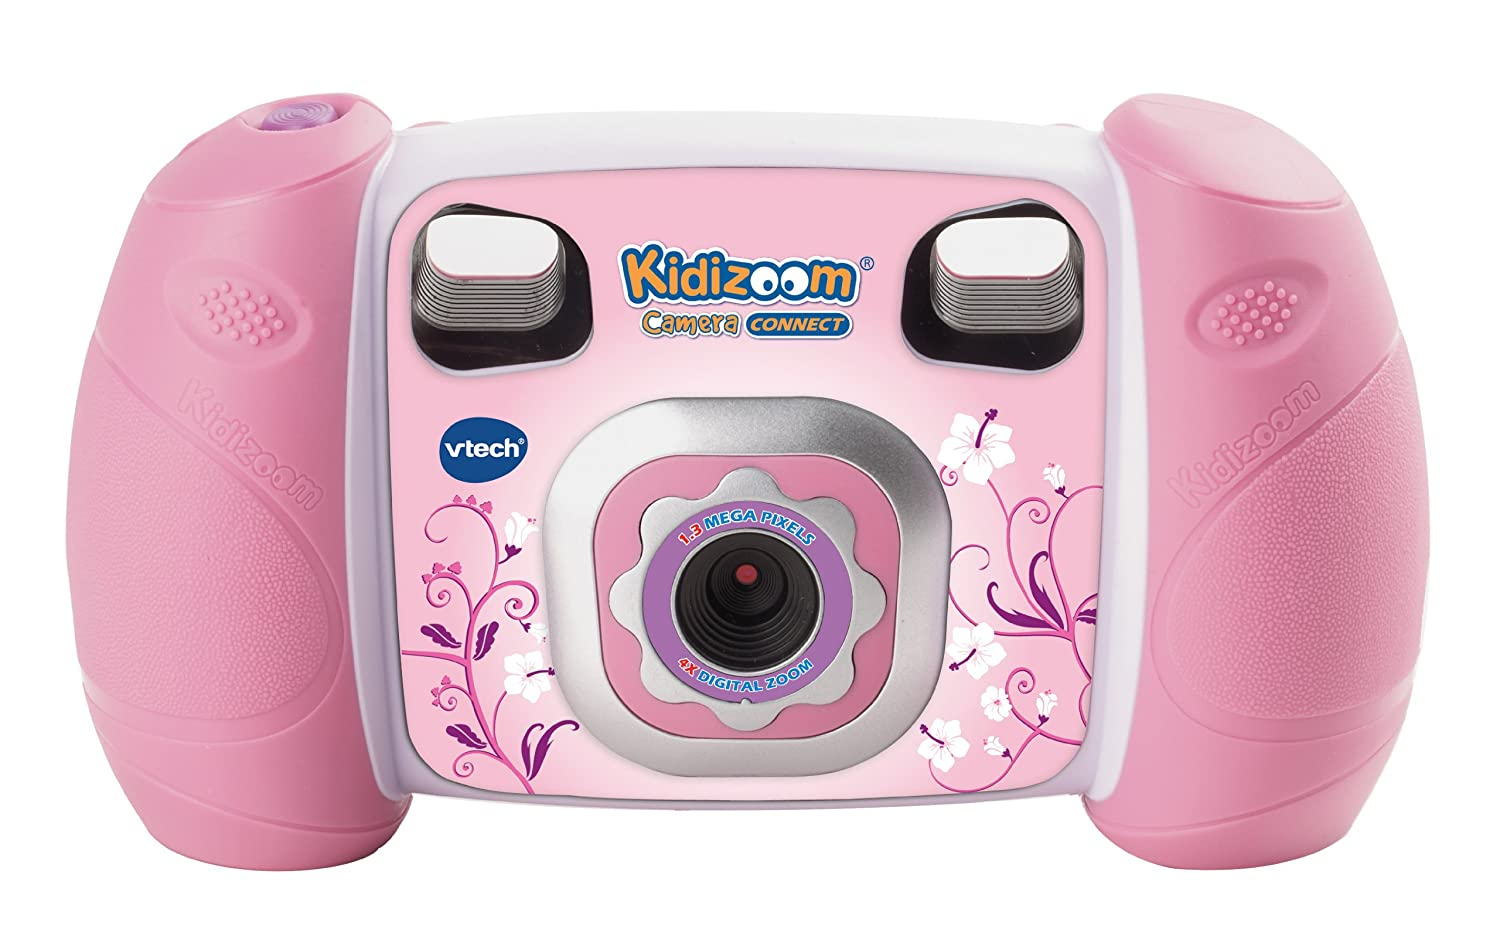 VTech Kidizoom Camera Connect , Blue V Tech 80-140700